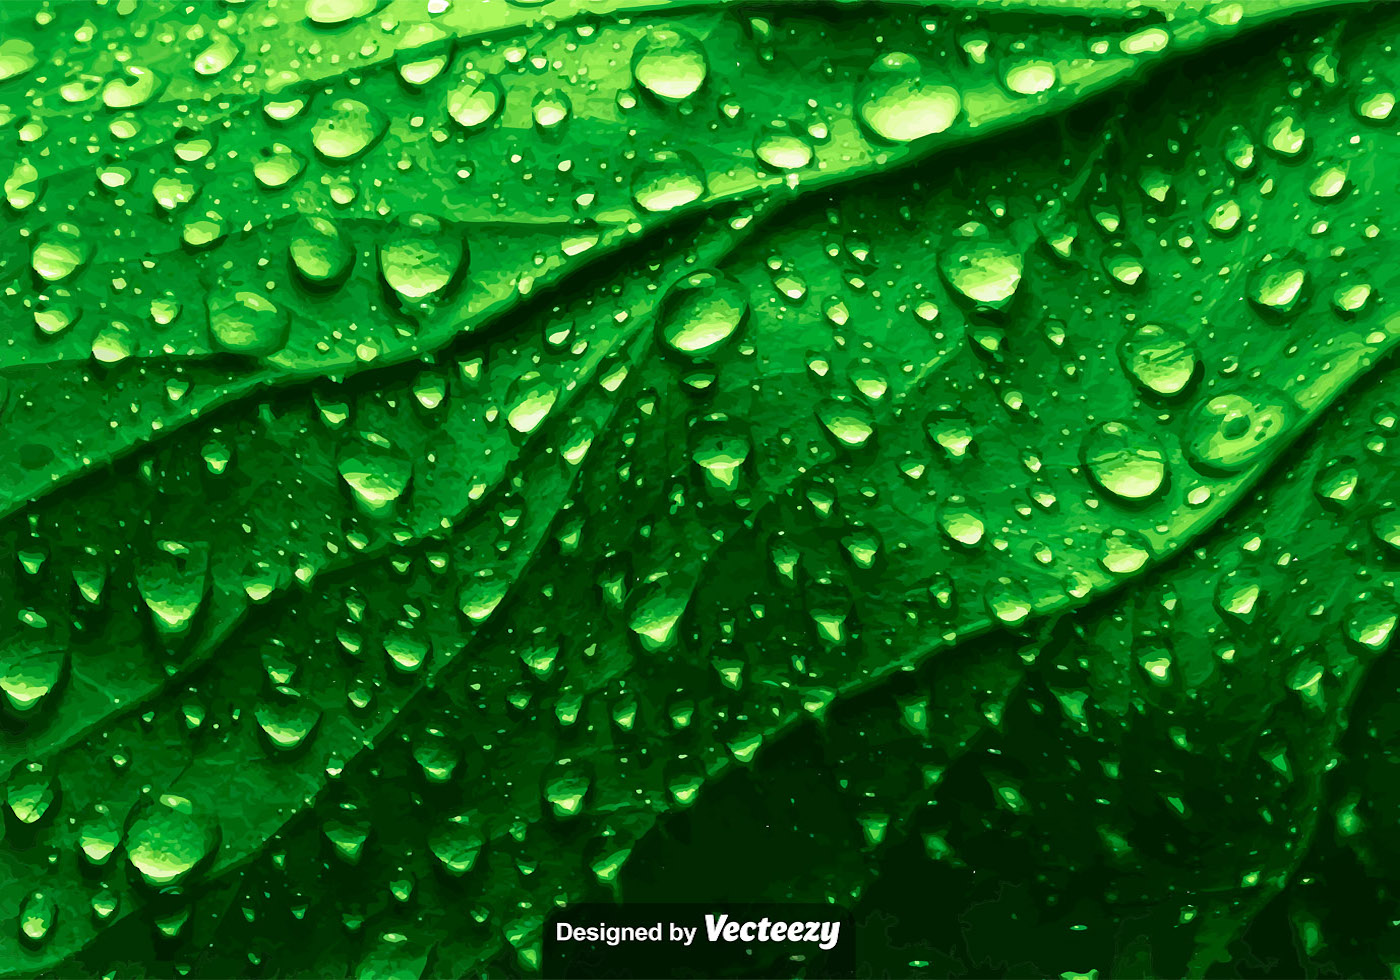 ... Drops - Vector - Download Free Vector Art, Stock Graphics & Images